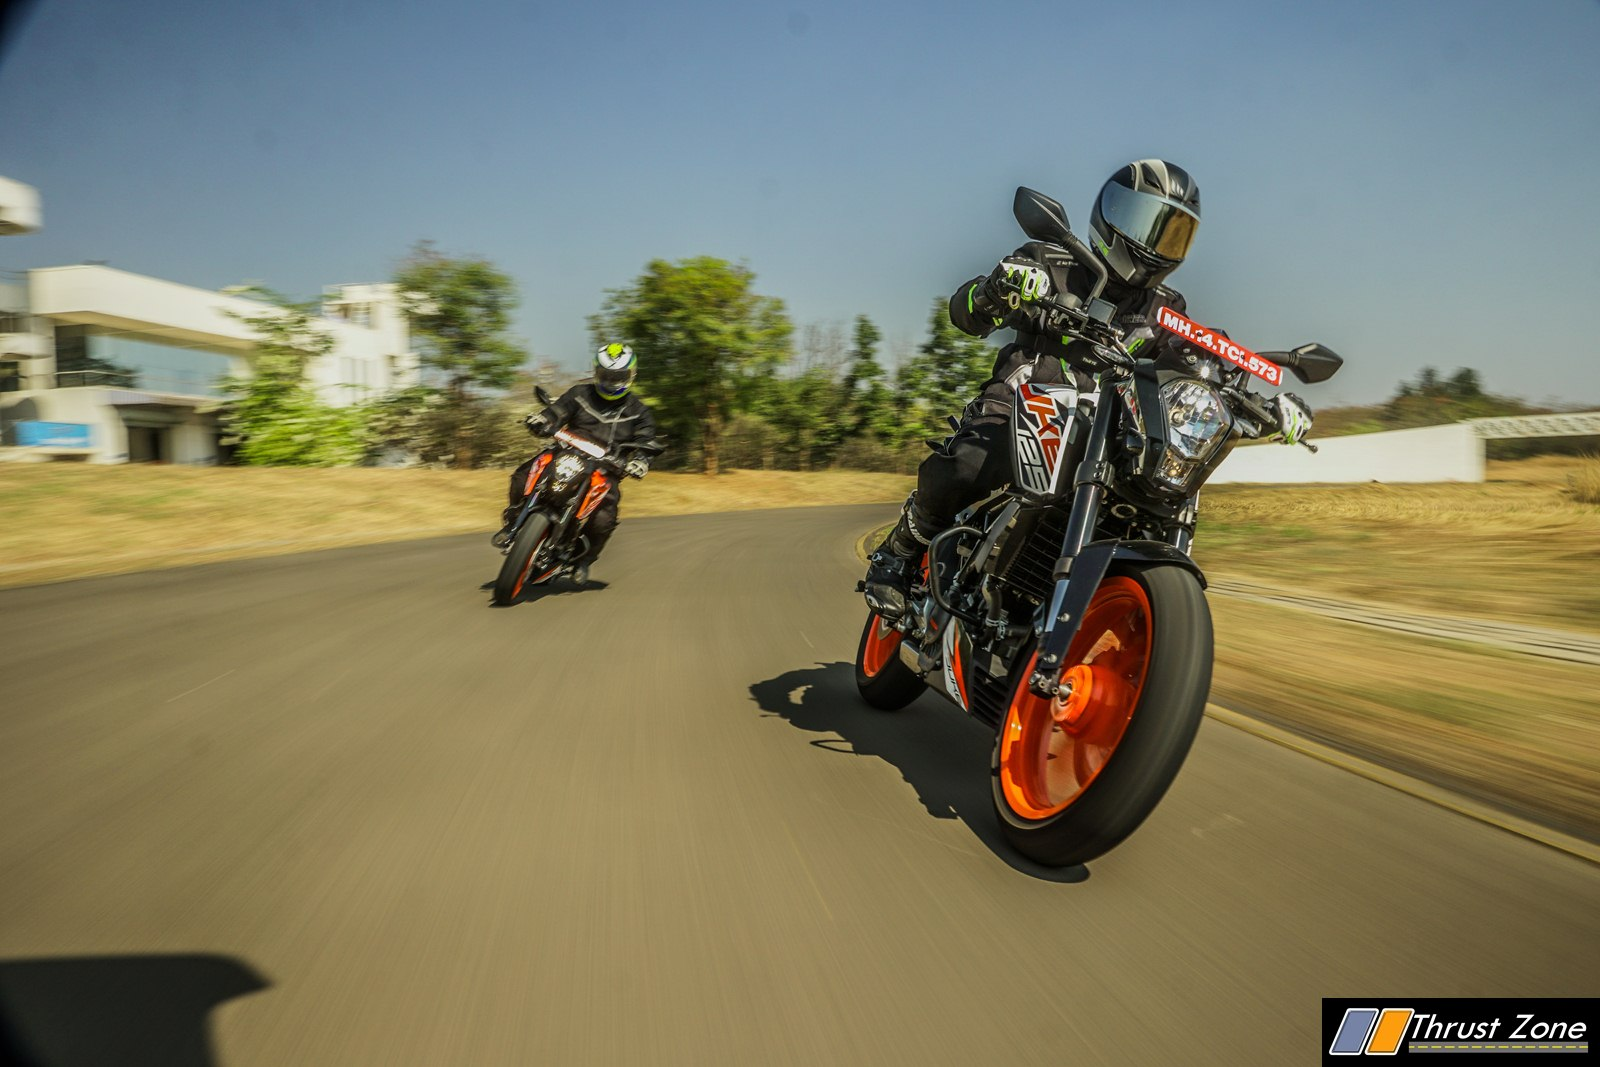 https://www.thrustzone.com/wp-content/uploads/2018/12/2018-KTM-DUKE-125-INDIA-Review-6.jpg